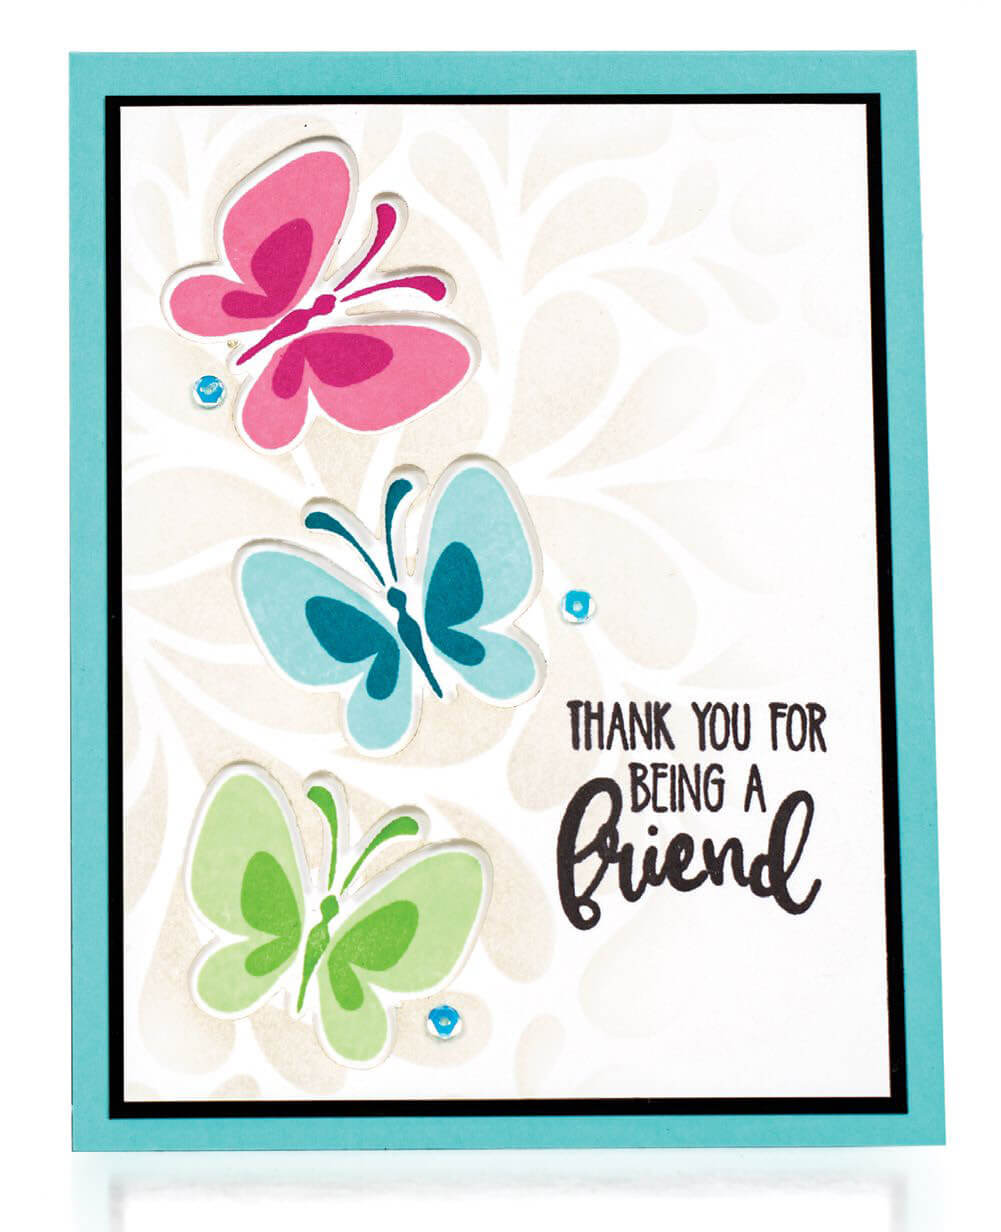 Scrapbook & Cards Today - Spring 2020 - Thank You For Being A Friend card by Gina Krupsky